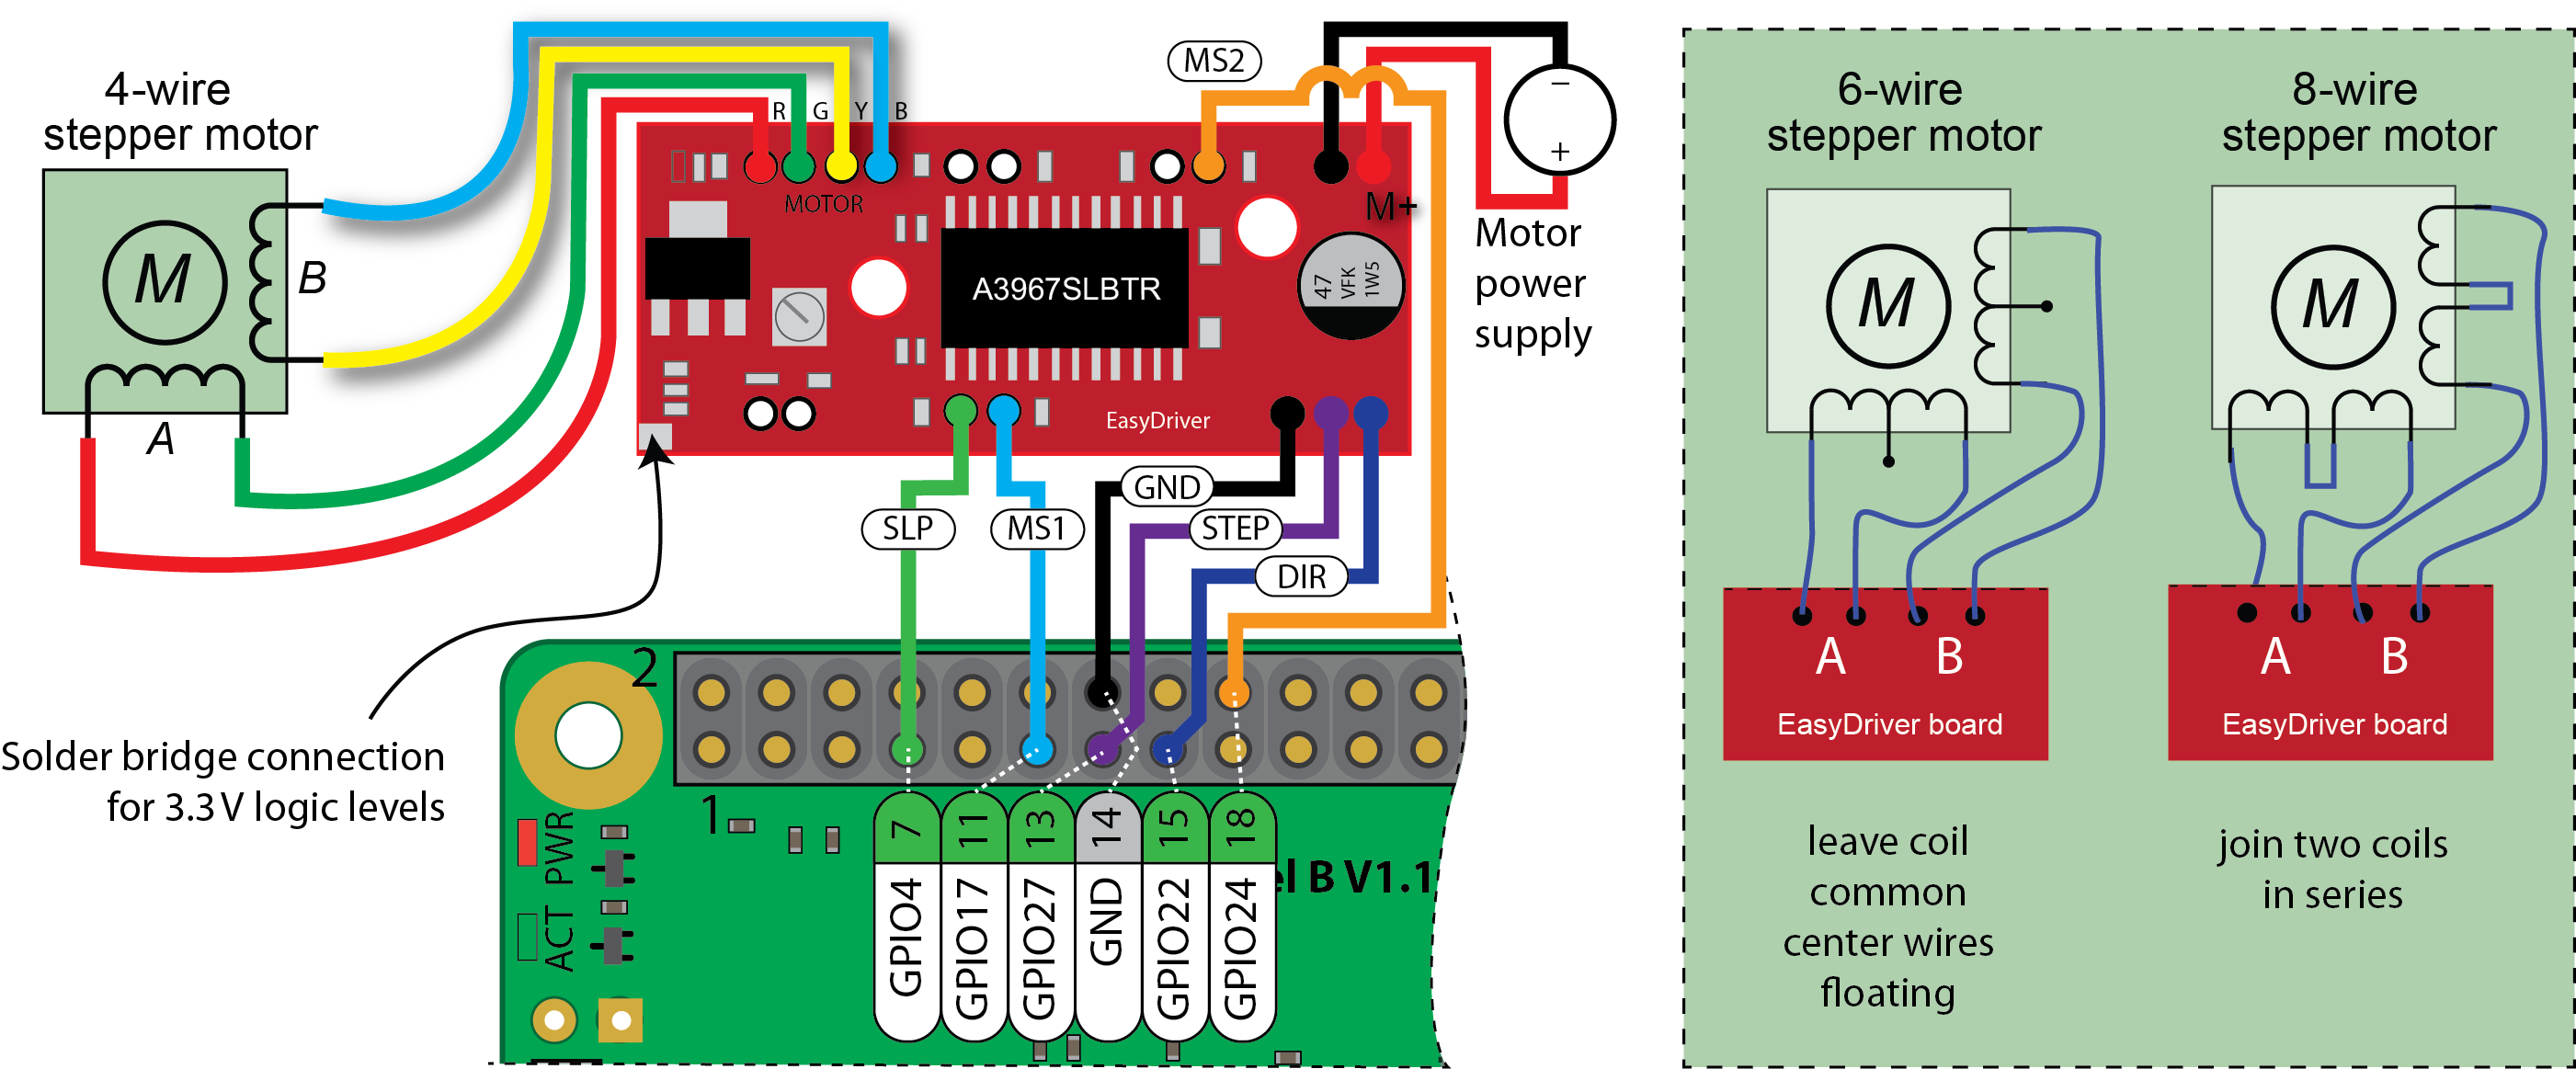 Chapter 10 Interacting With The Physical Environment Exploring 8 Wire Stepper Motor Wiring Diagram Some Other High Resolution Figures From This